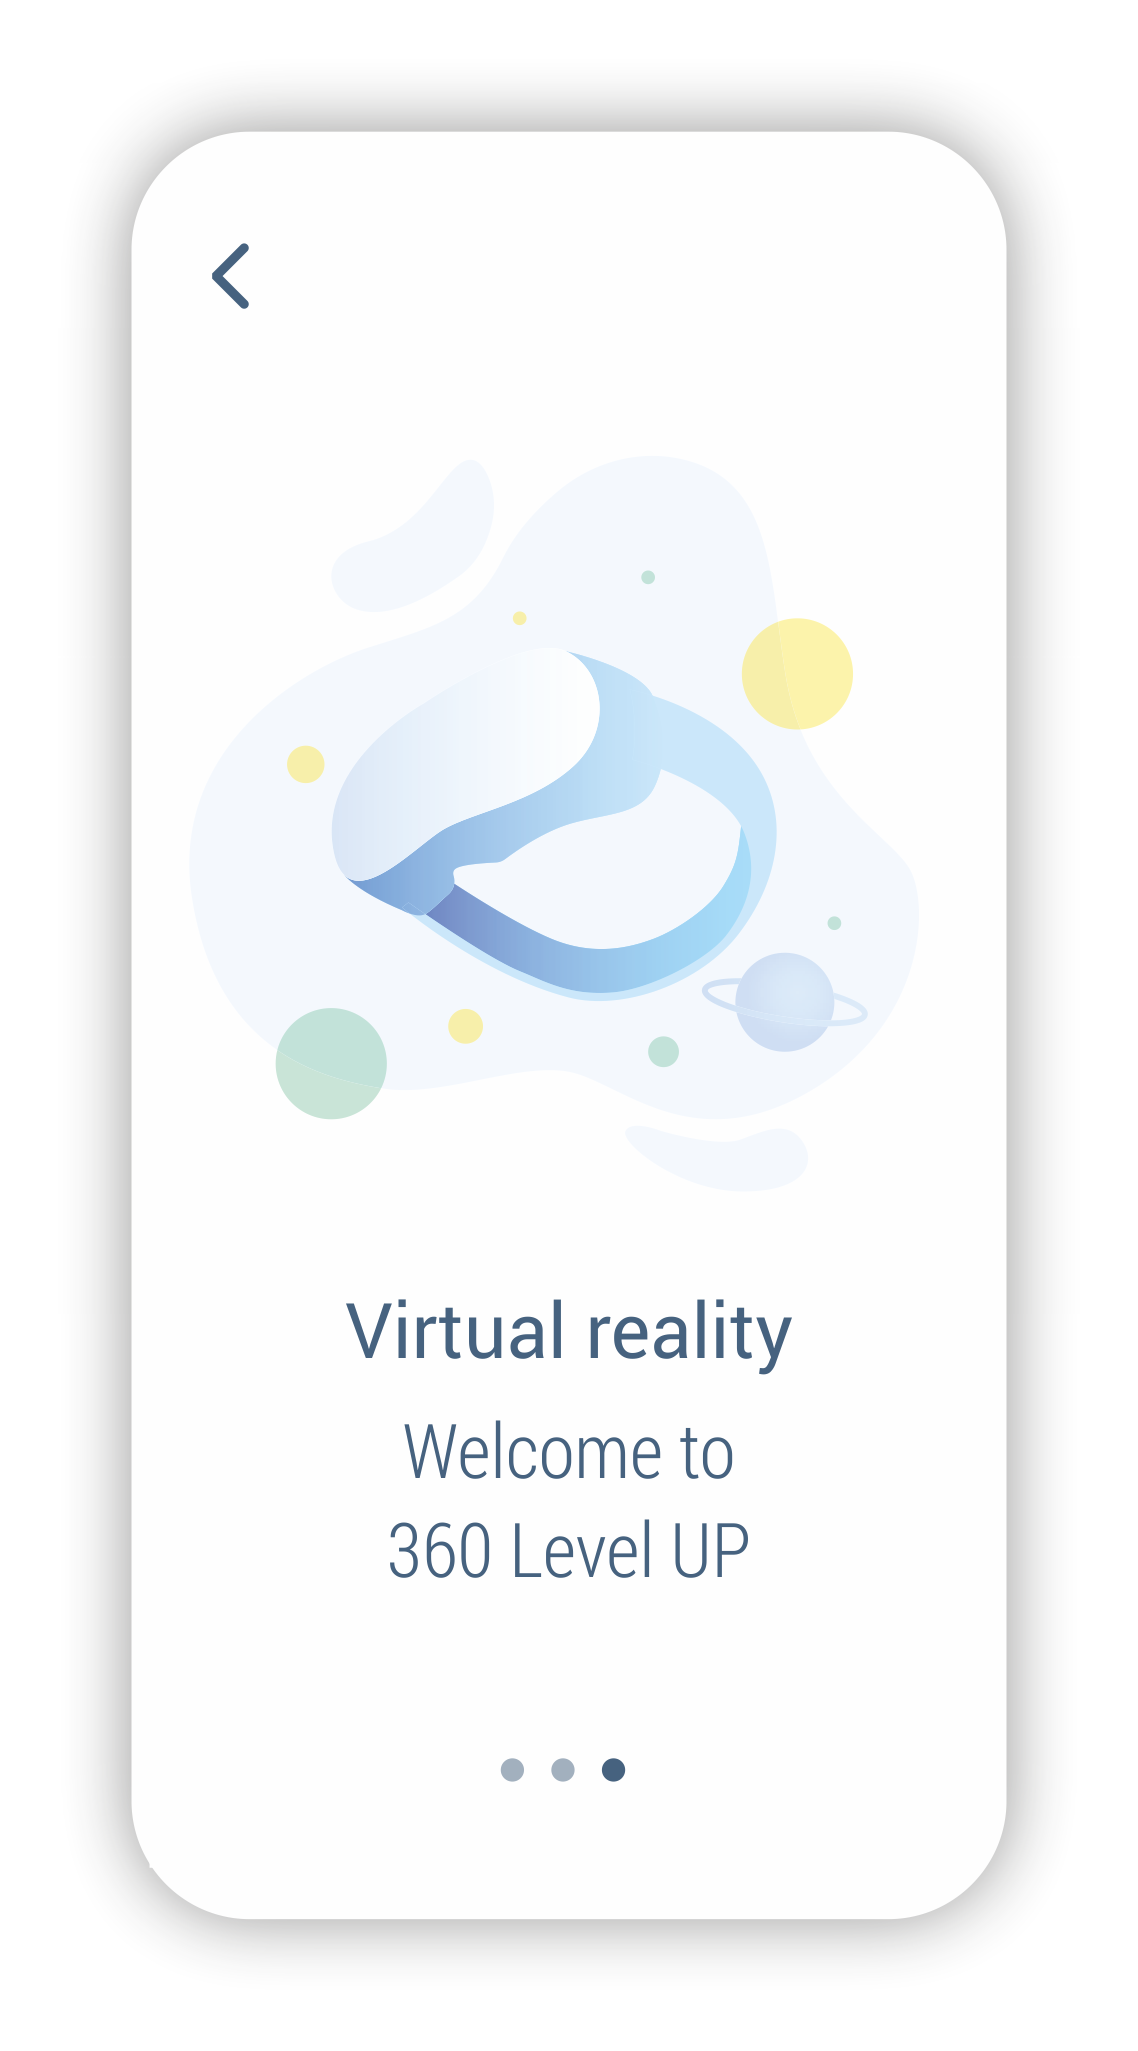 360-level-up-mobile-app-concept-vr-reality-02